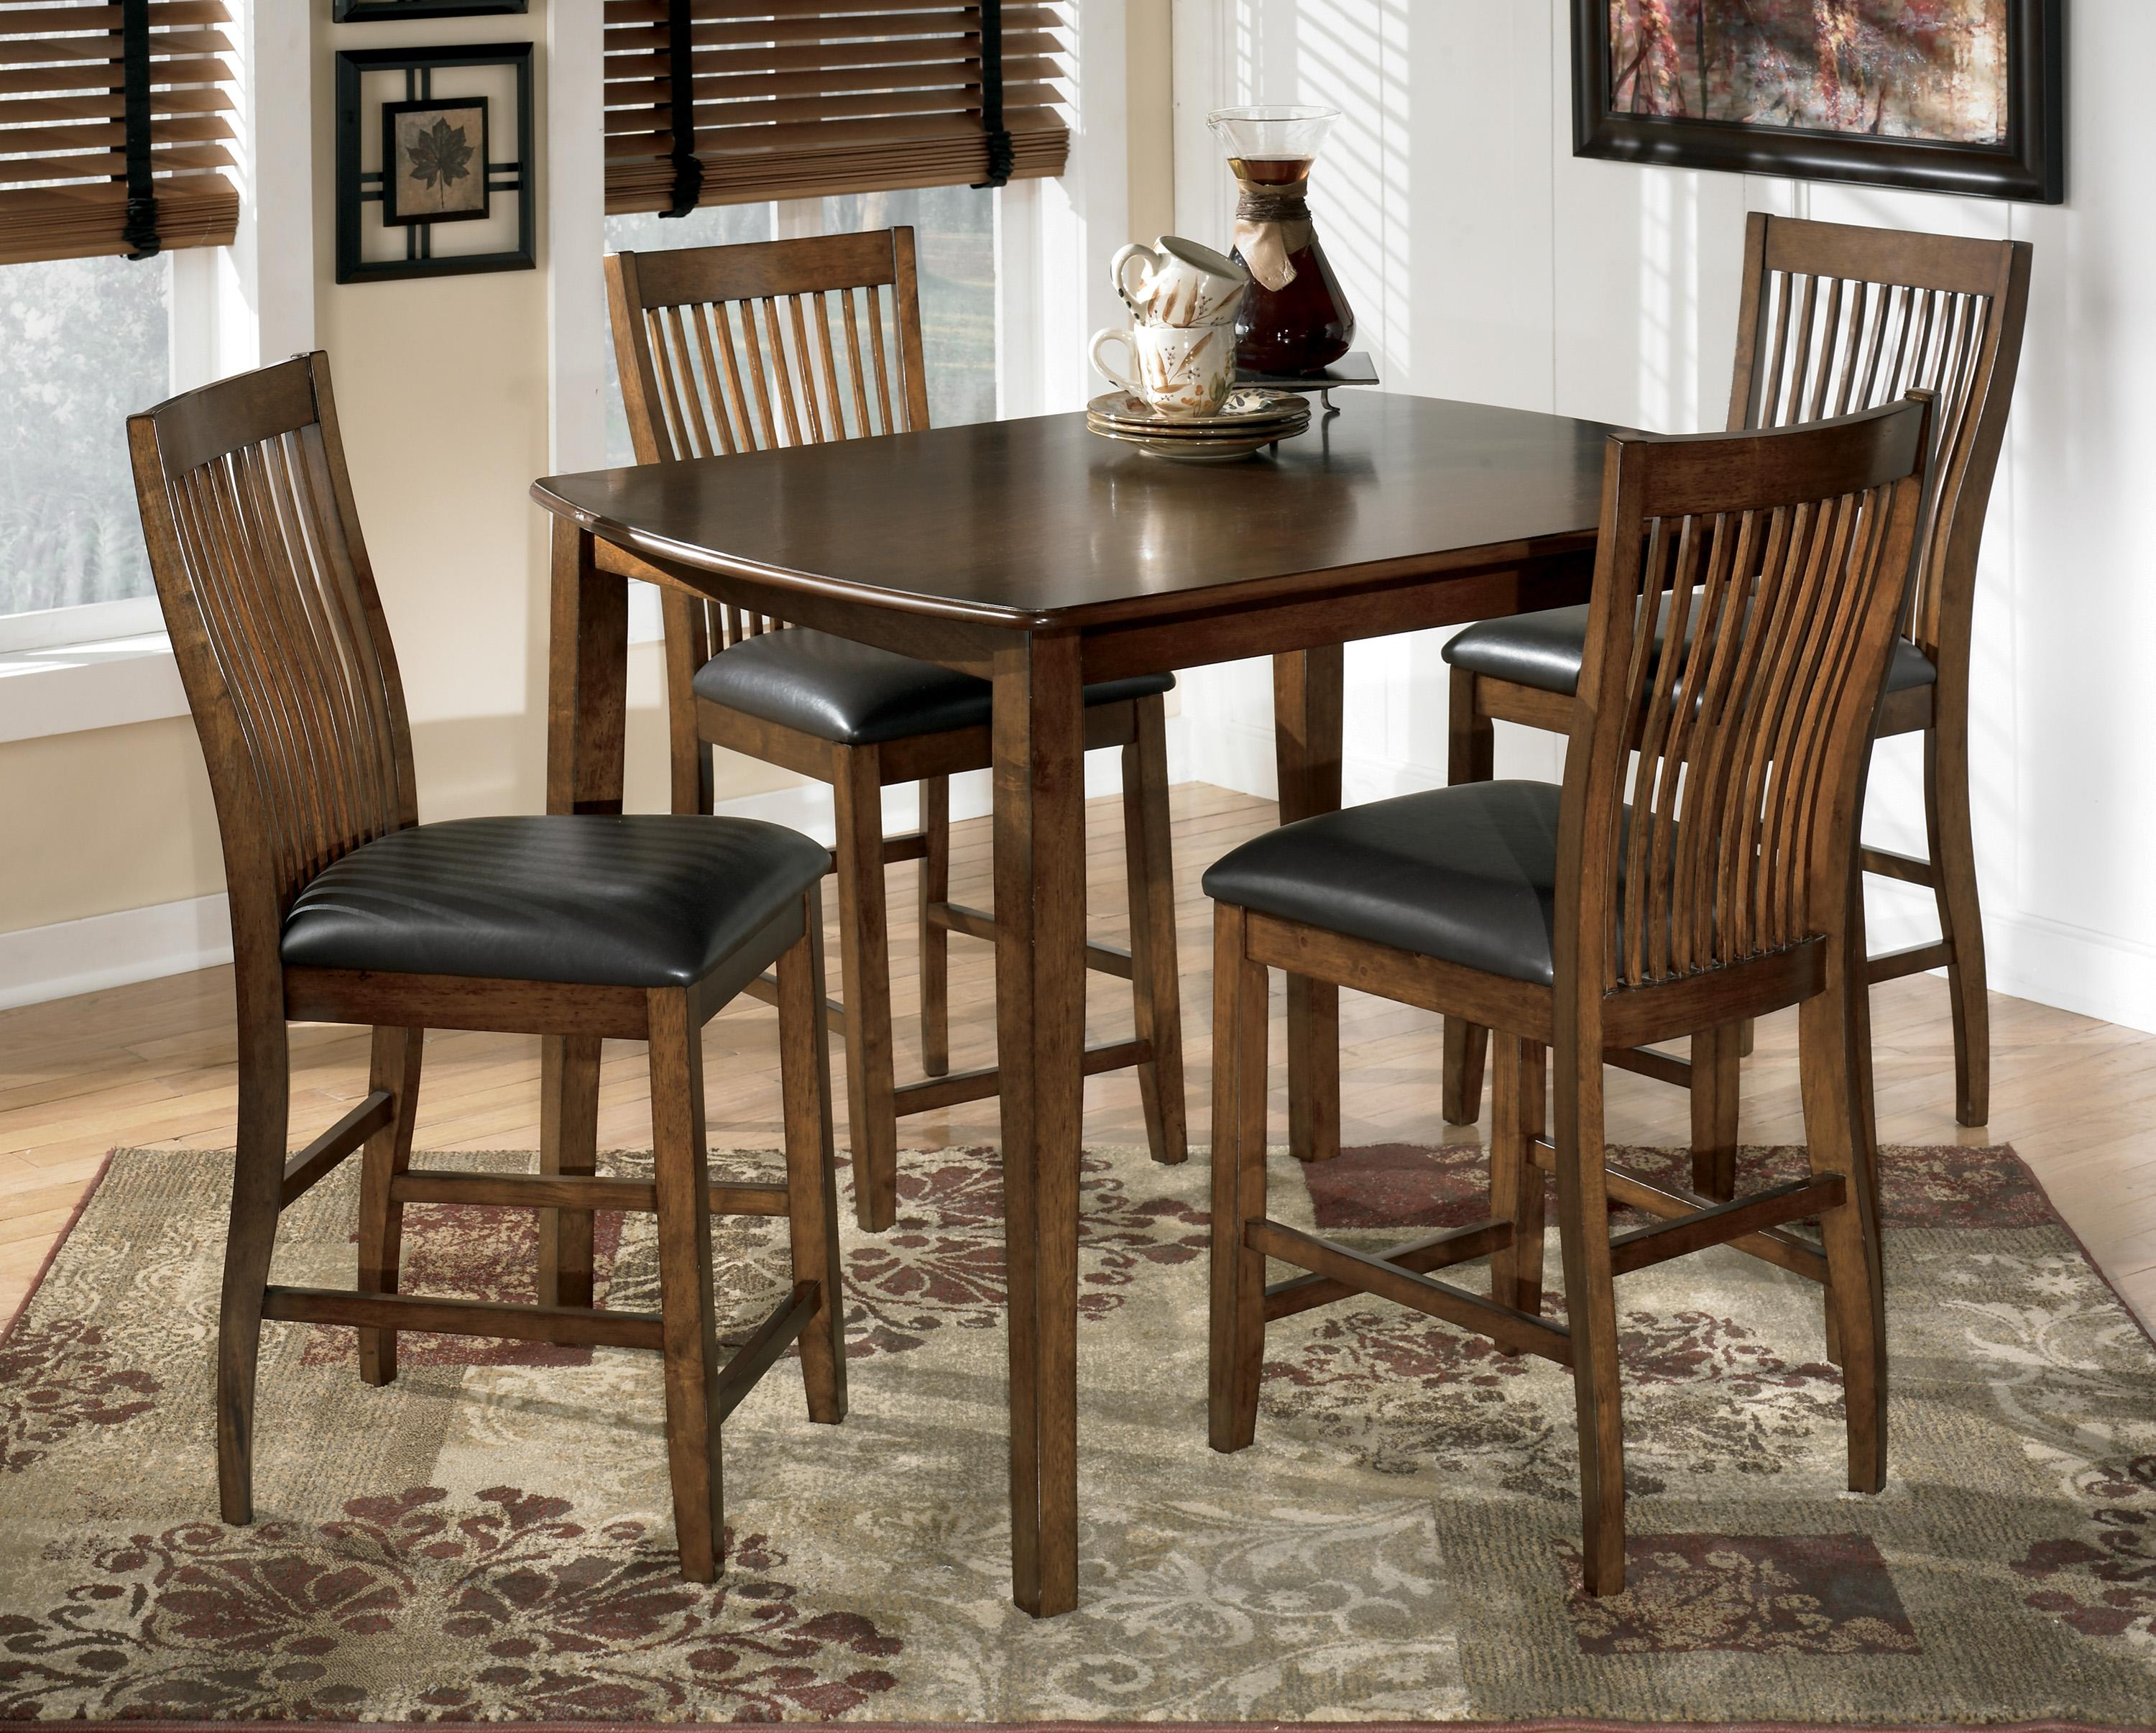 Signature Design by Ashley Stuman 5-Piece Rectangular Dining Room ...